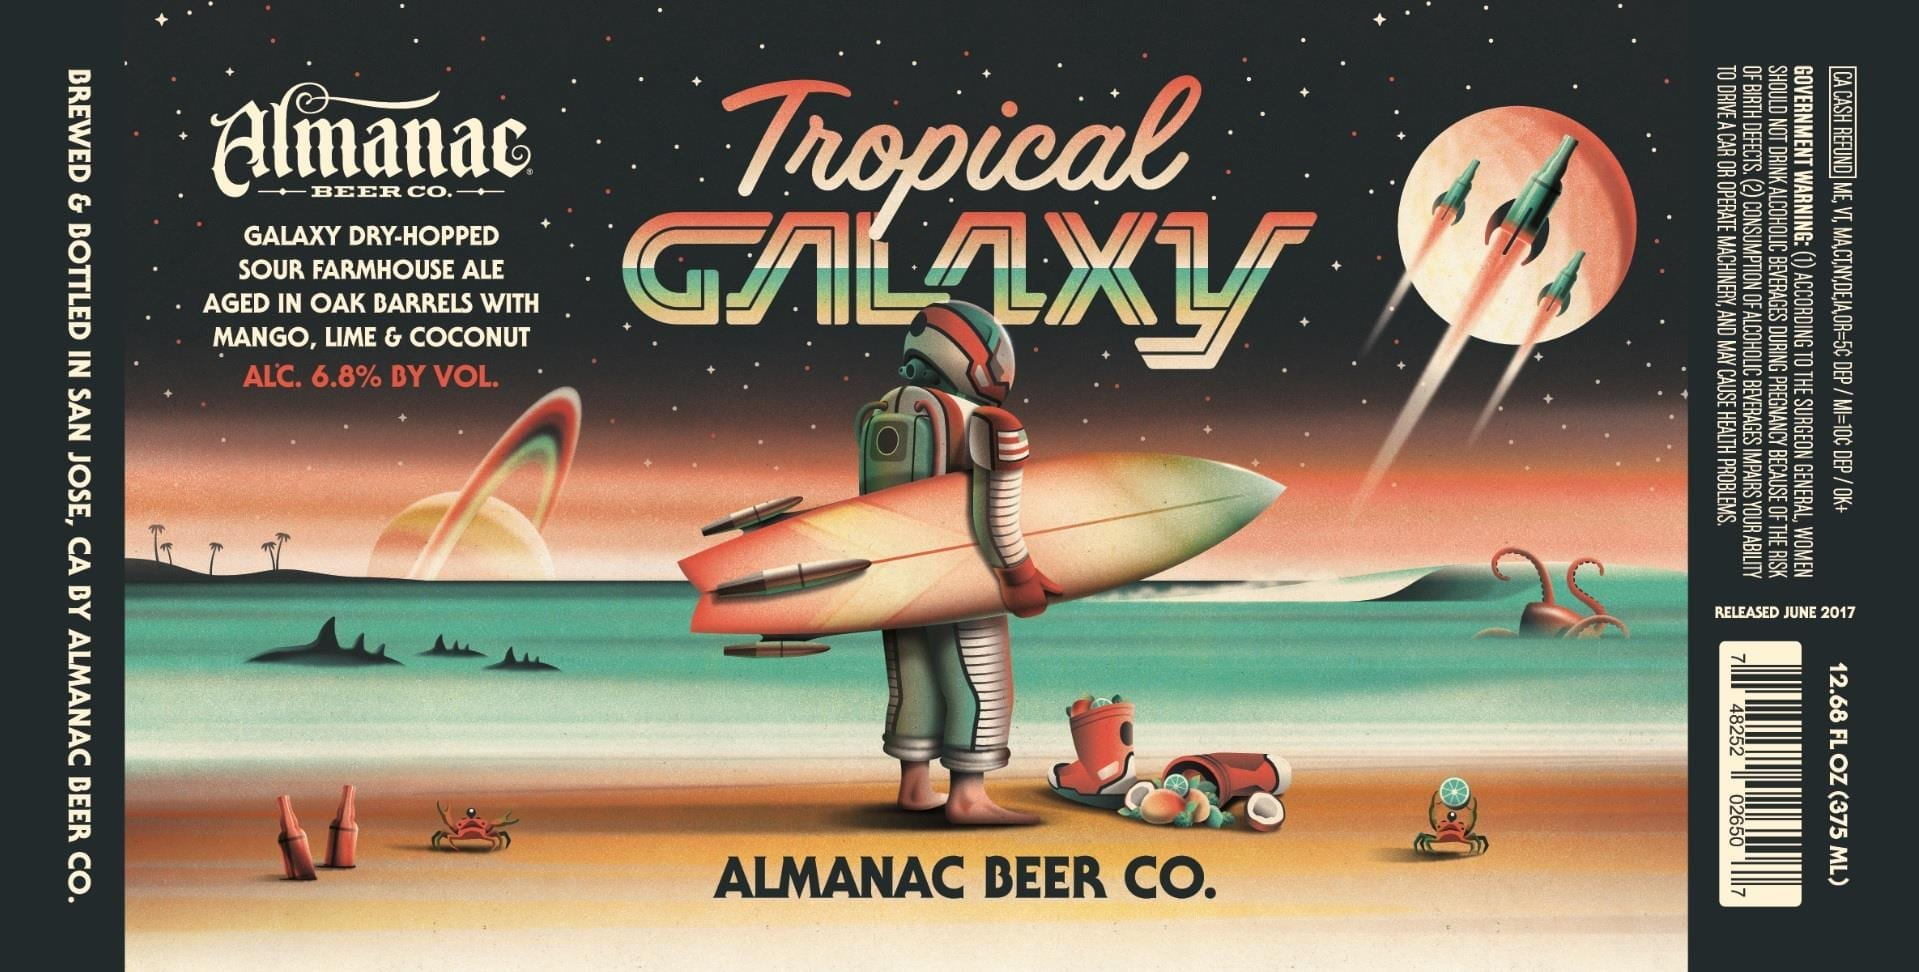 Almanac Beer Co. Tropical Galaxy Beer Label